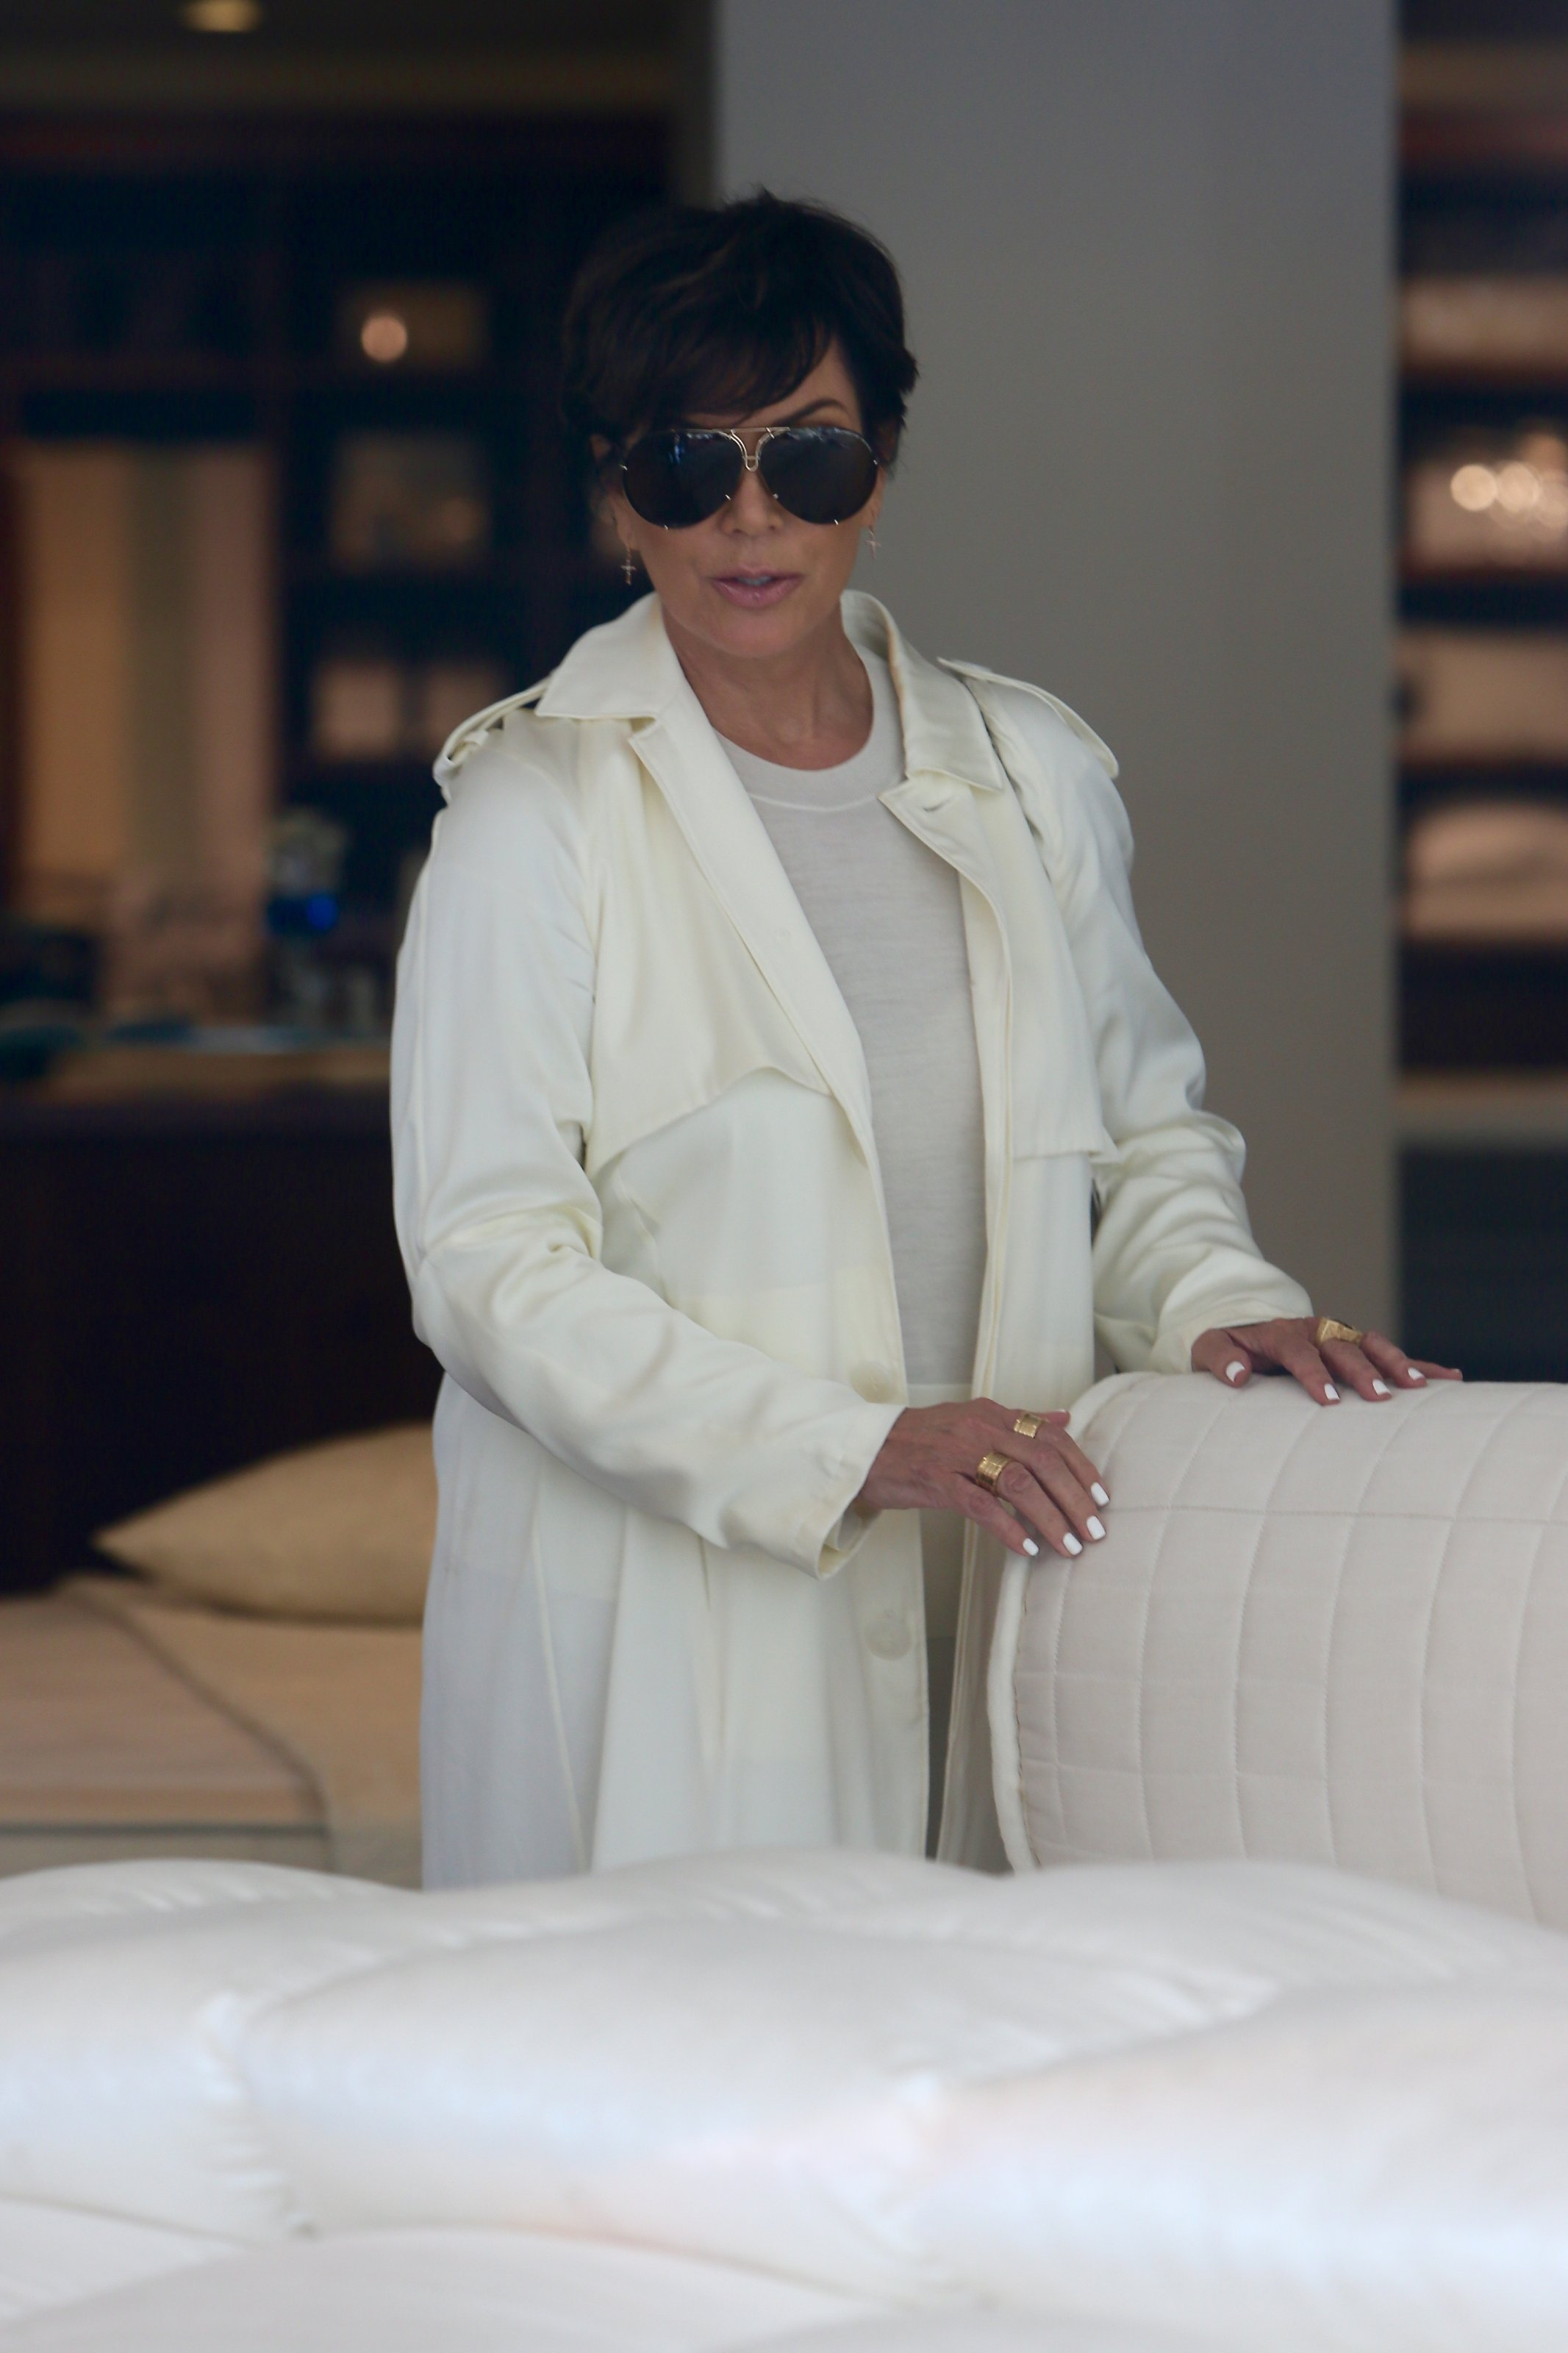 Kris Jenner seen shopping for Mattresses with a friend at Custom Comfort Mattresses.  Featuring: Kris Jenner Where: Los Angeles, California, United States When: 14 Sep 2015 Credit: Michael Wright/WENN.com